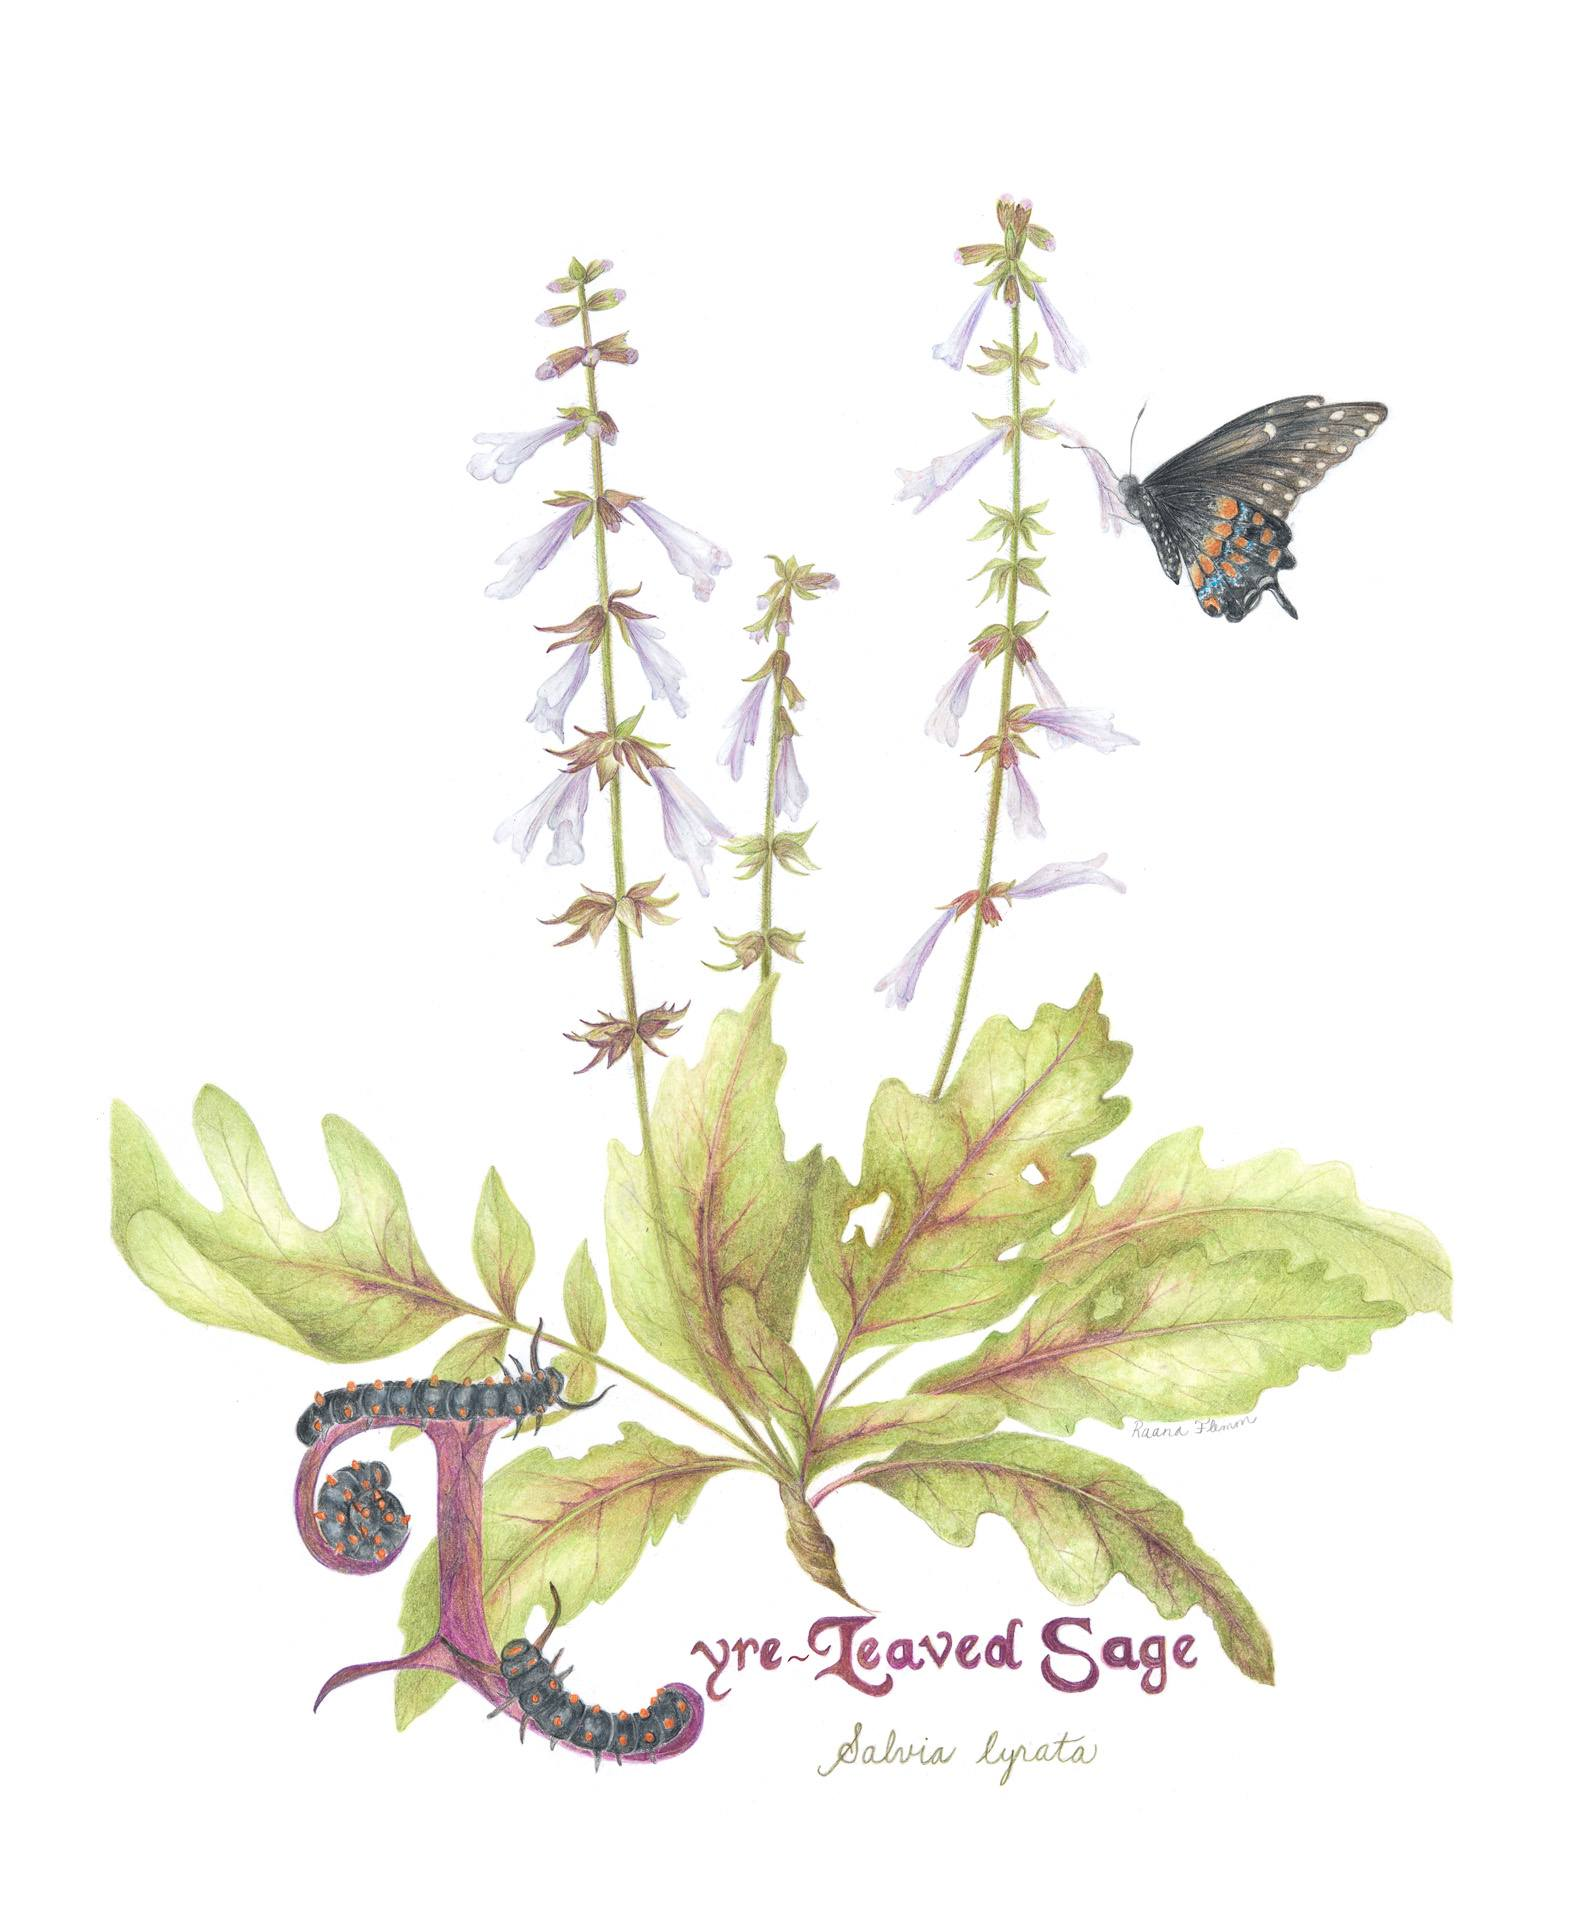 Lyre-leaved sage, Salvia lyrata, Colored pencil by Raana Flemm